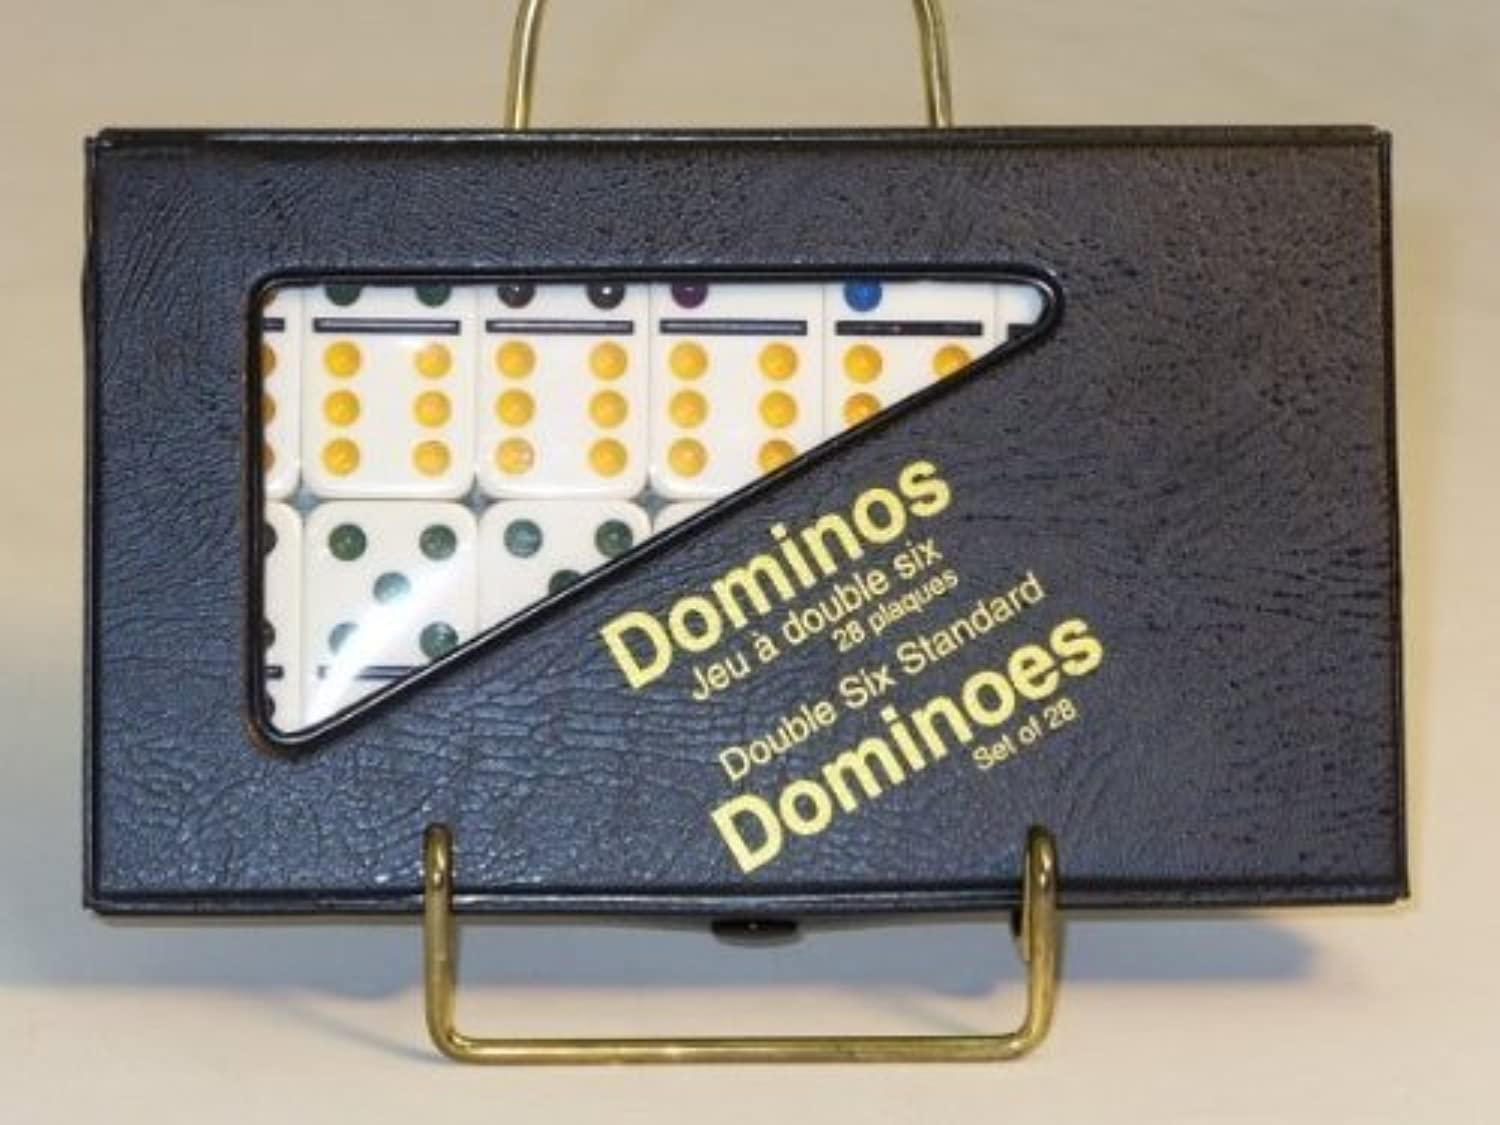 Double 6 Domino Action Game, White by Worldwise Imports